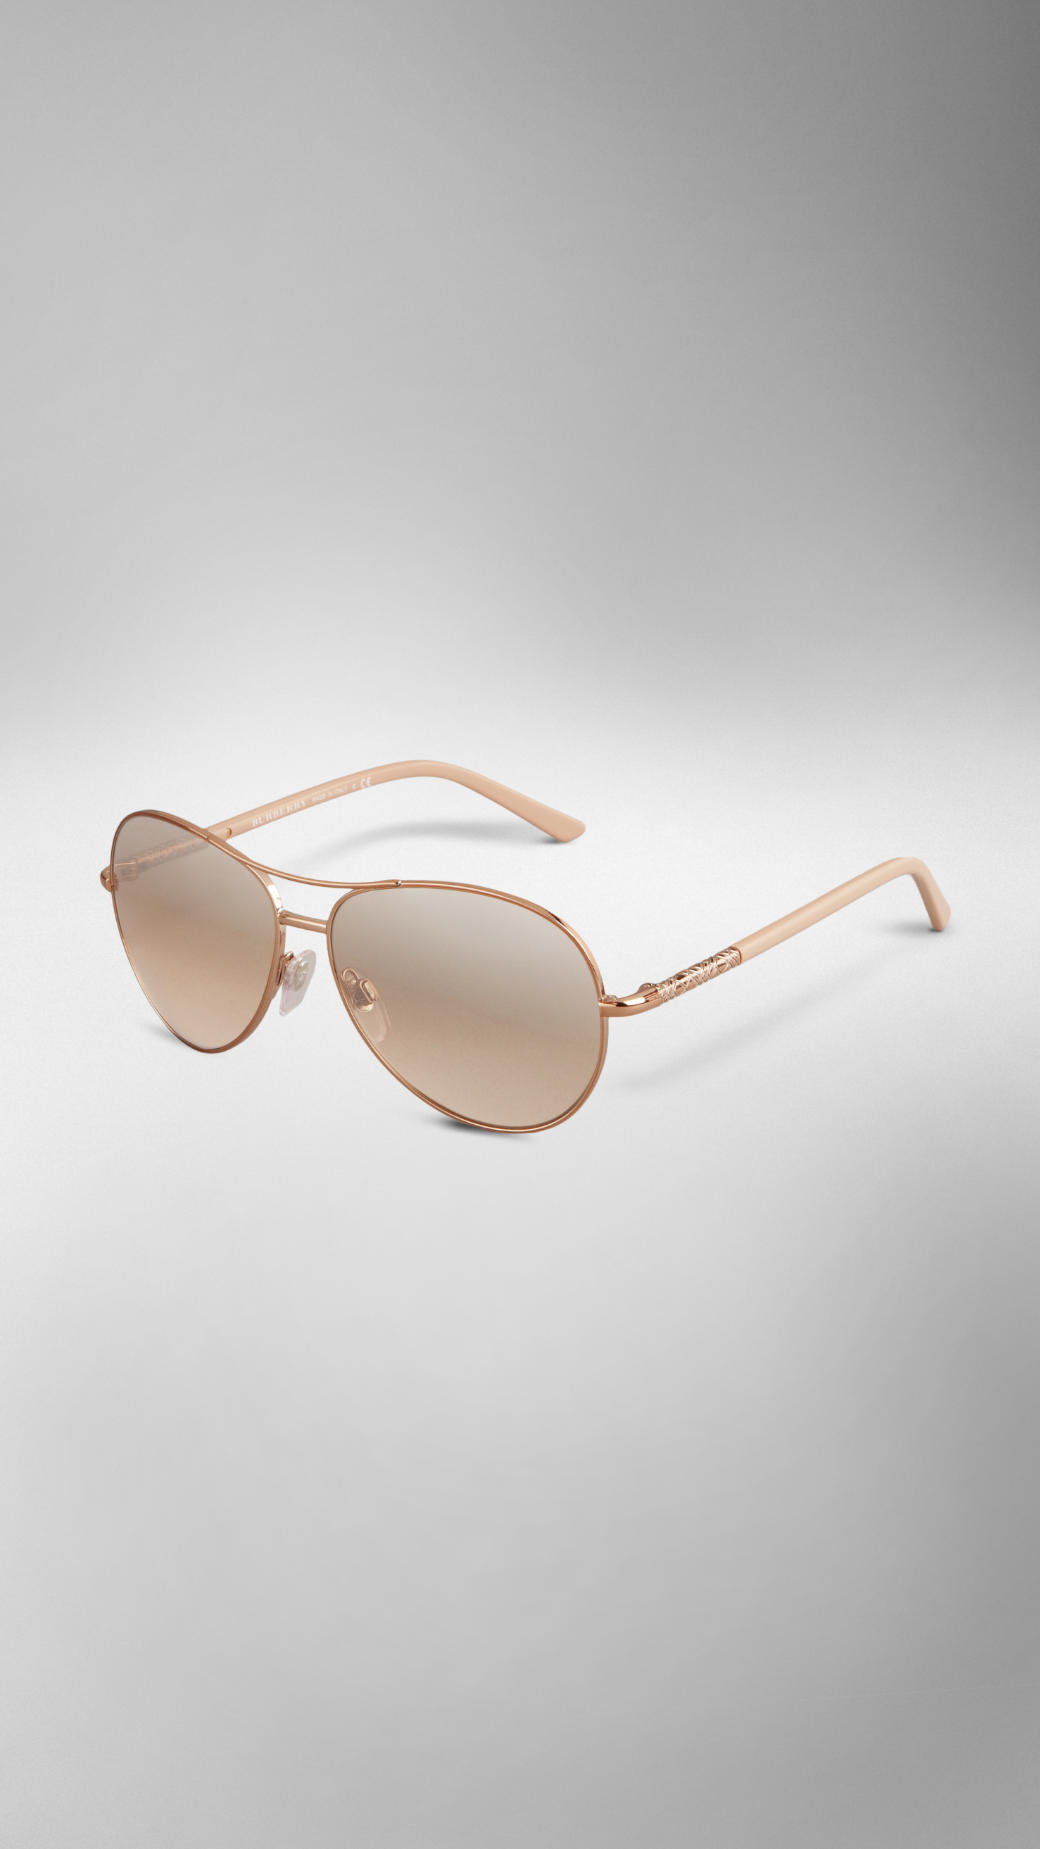 813802276d87 Burberry Nude Classic Aviator Sunglasses in Pink - Lyst